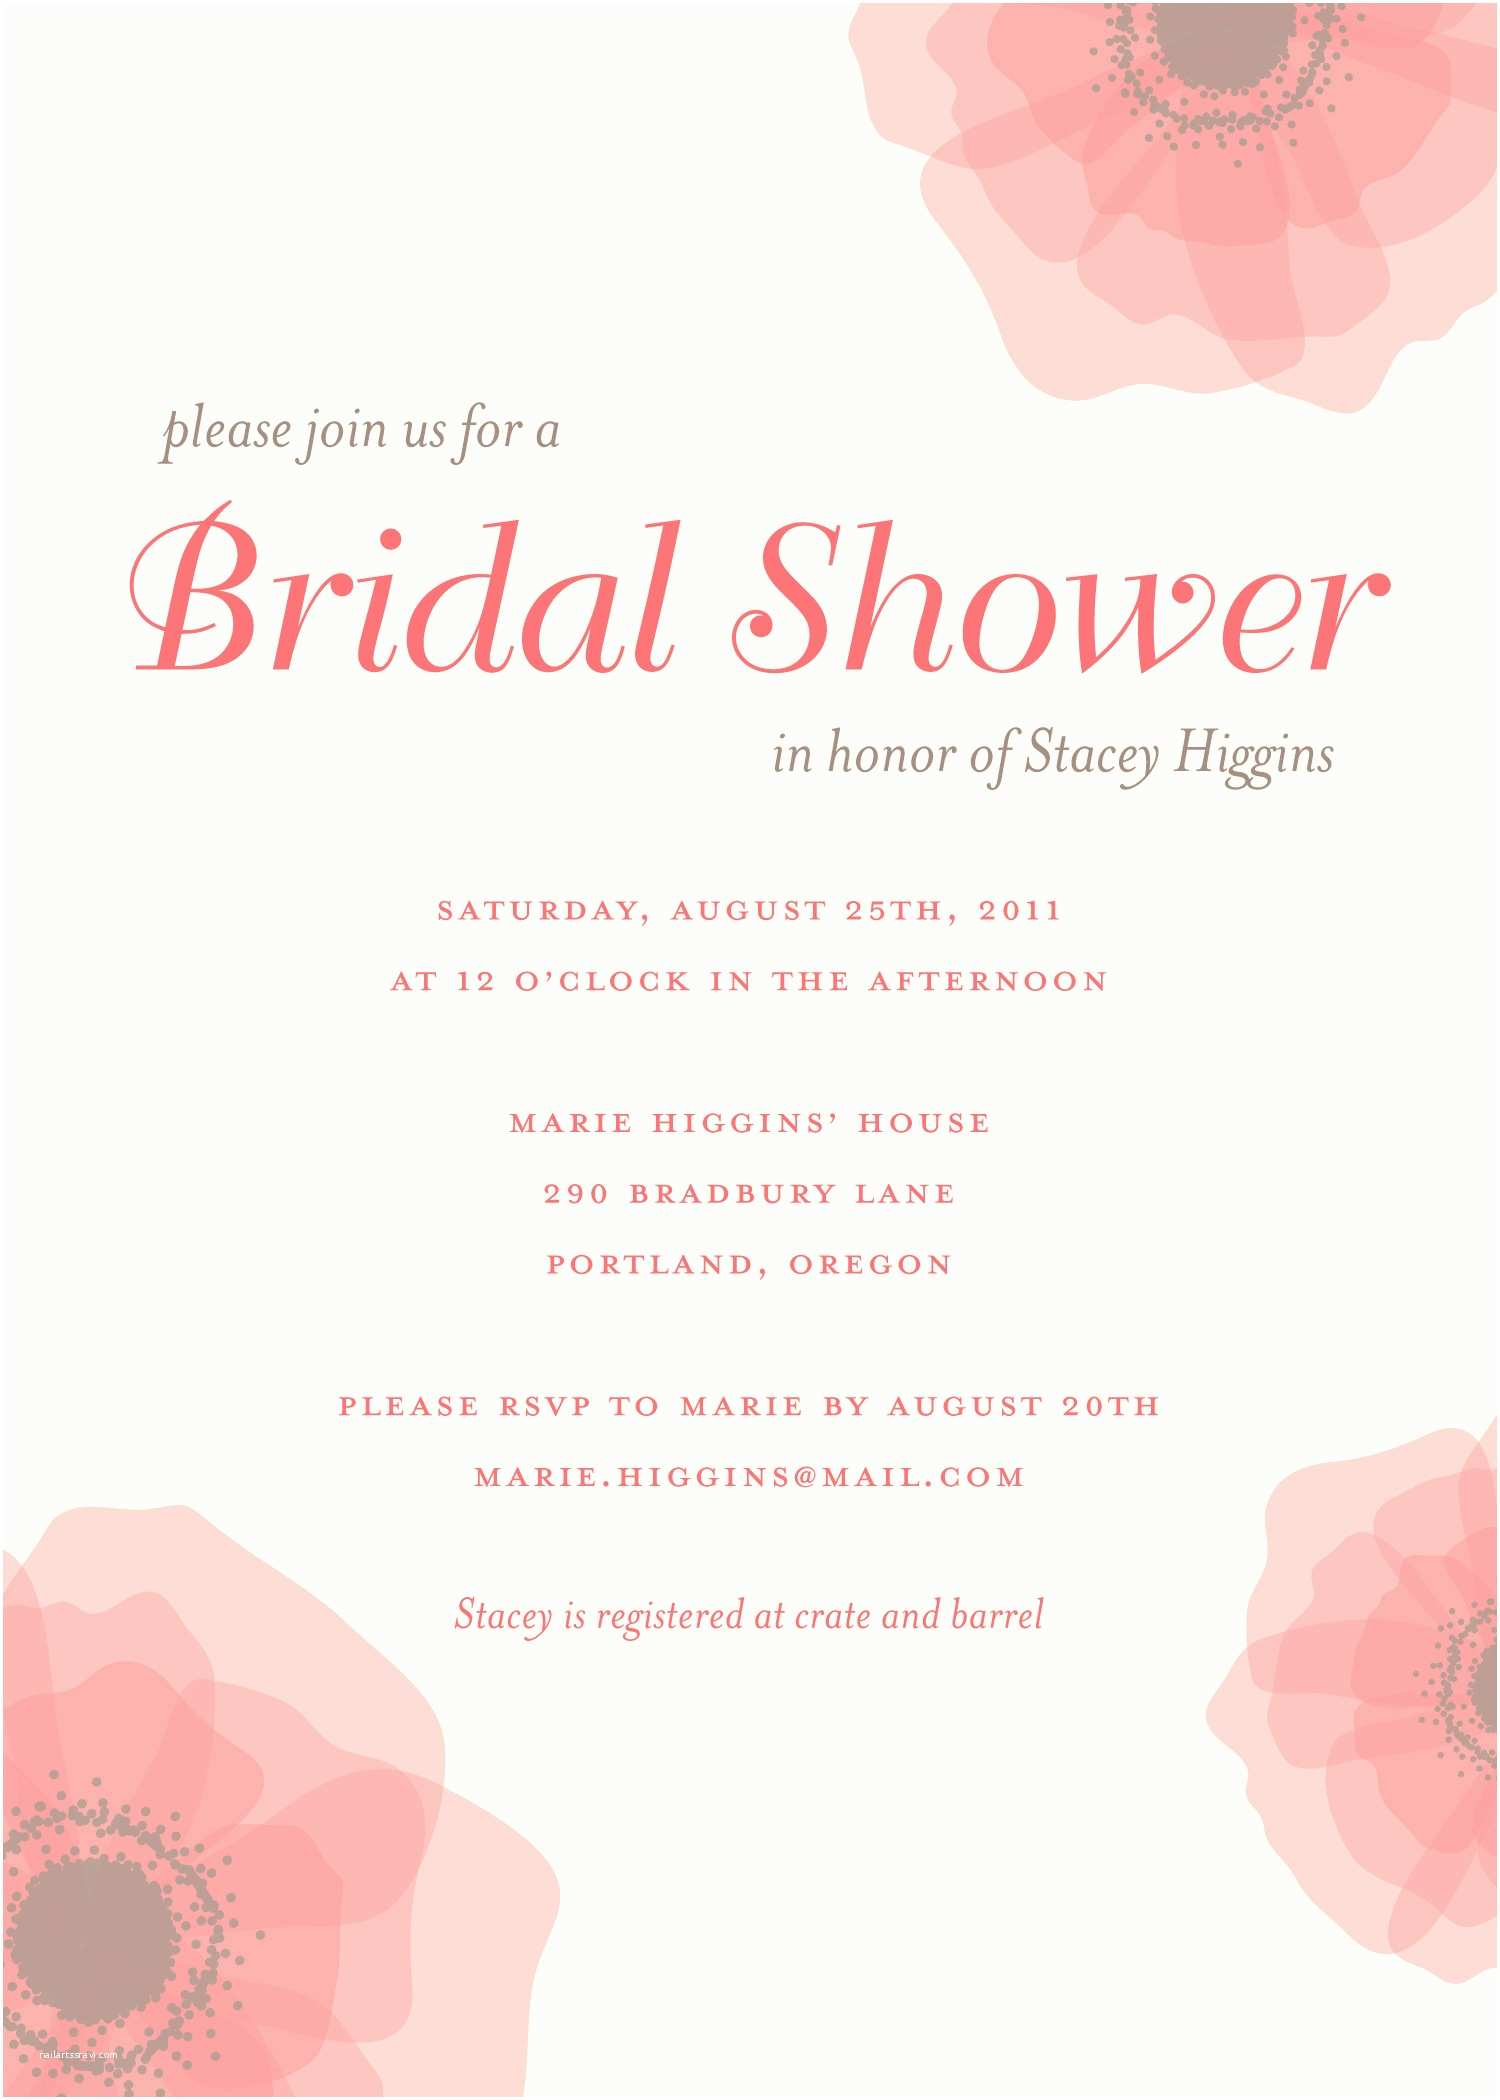 Brides Wedding Invitations Bridal Shower Save the Date Wording